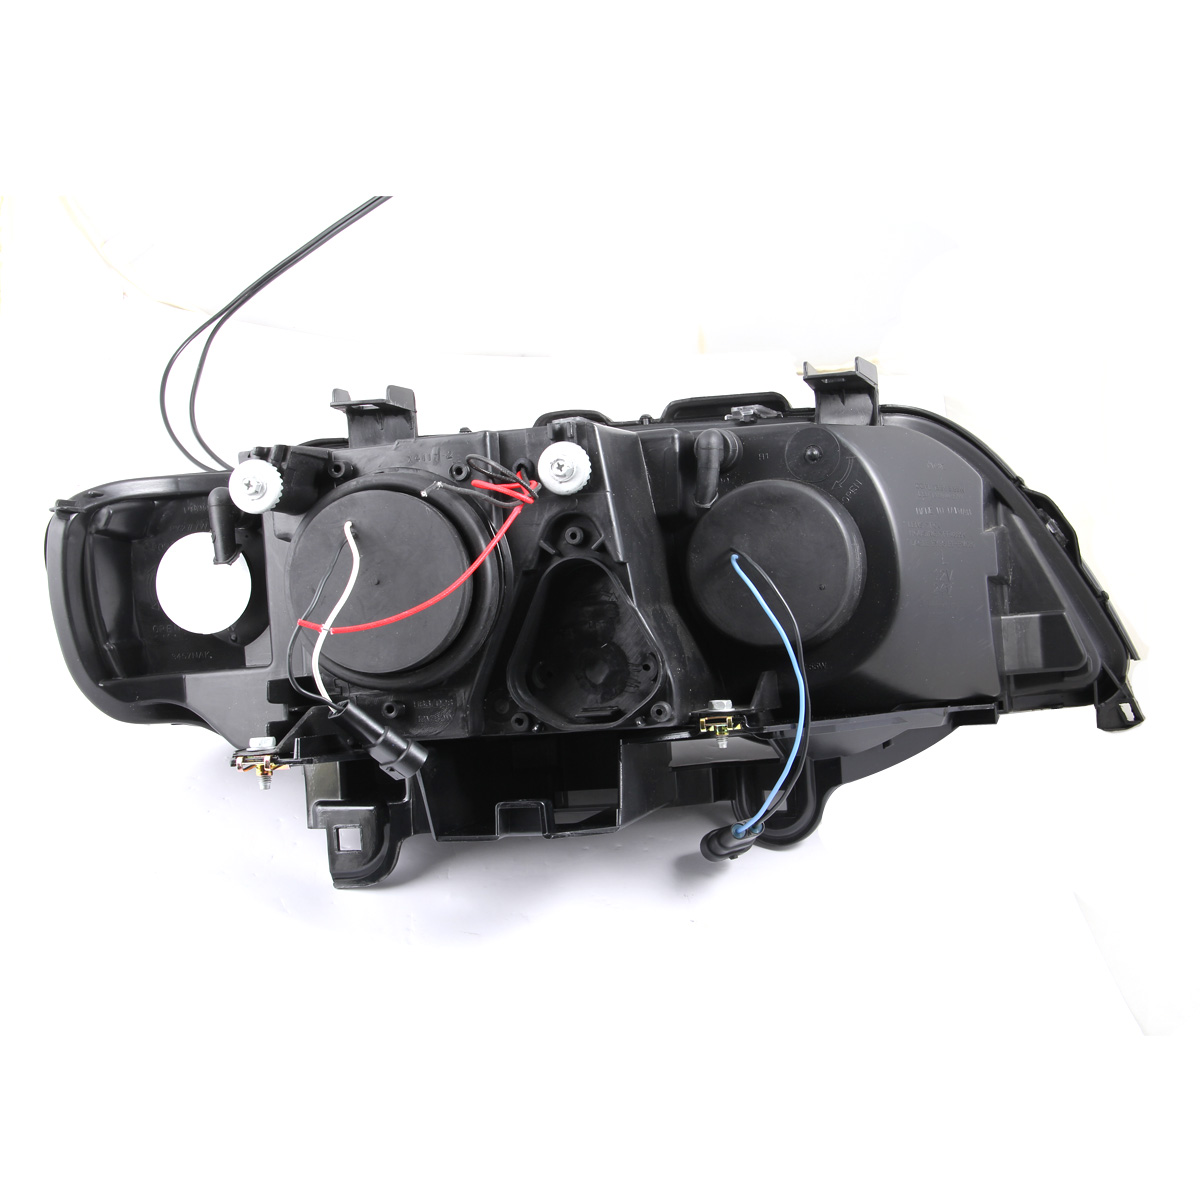 led engine diagram halo led wiring diagram halo image wiring diagram on projector headlight diagram, home theater projector setup diagram, projector parts, projector lens diagram, dlp projector diagram, projector installation, projector wiring setup, projector in-wall wiring kit,